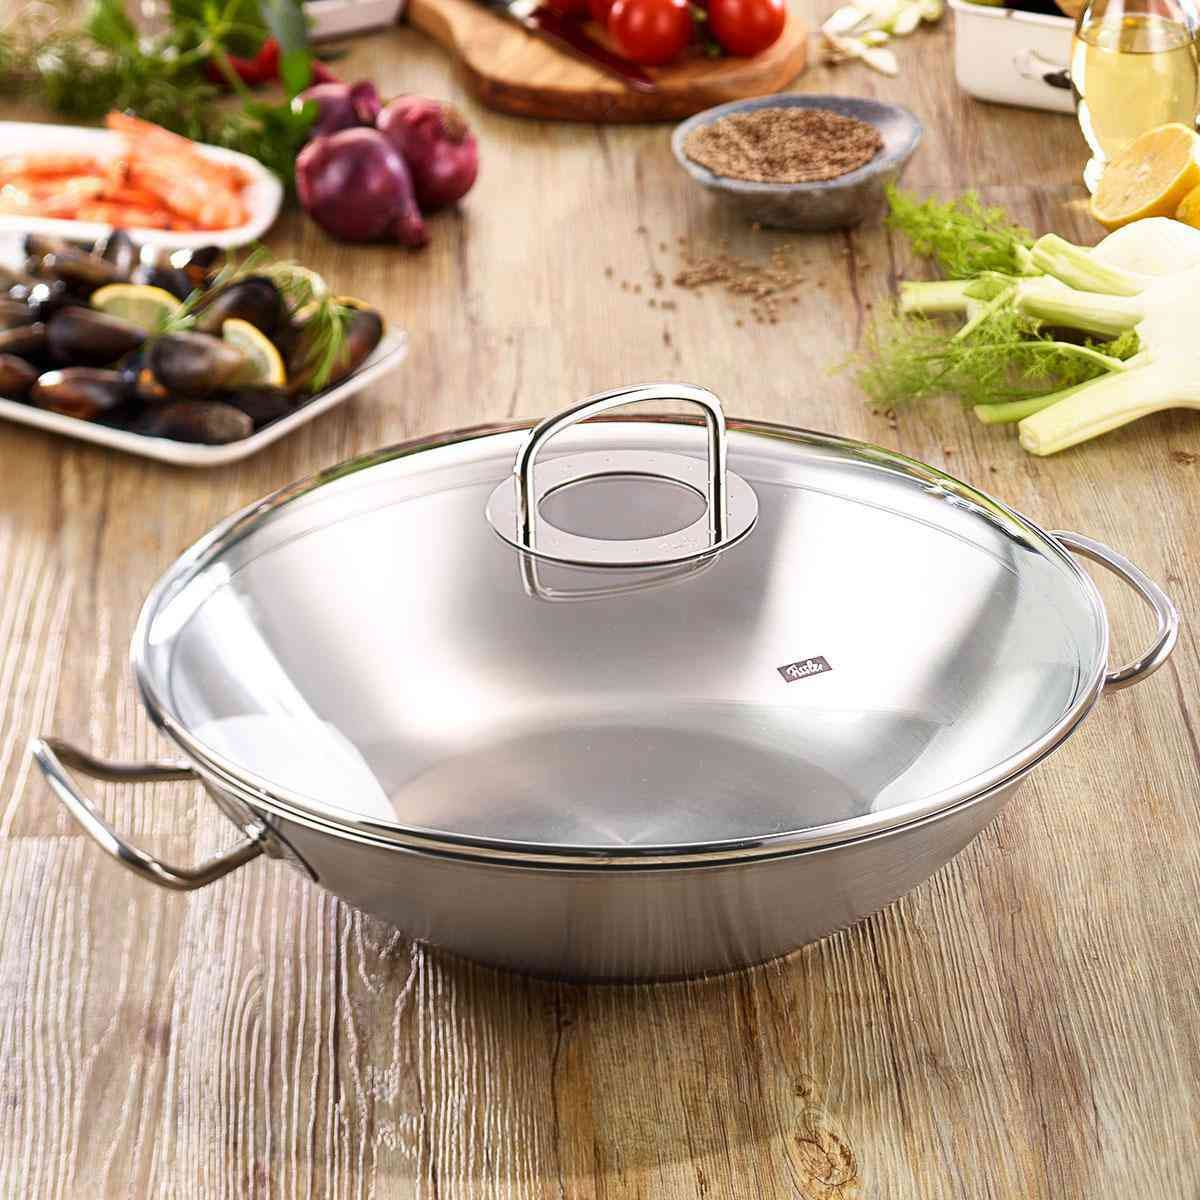 Open Box - originial-profi collection® Wok with Glass Lid, 13.8 Inch